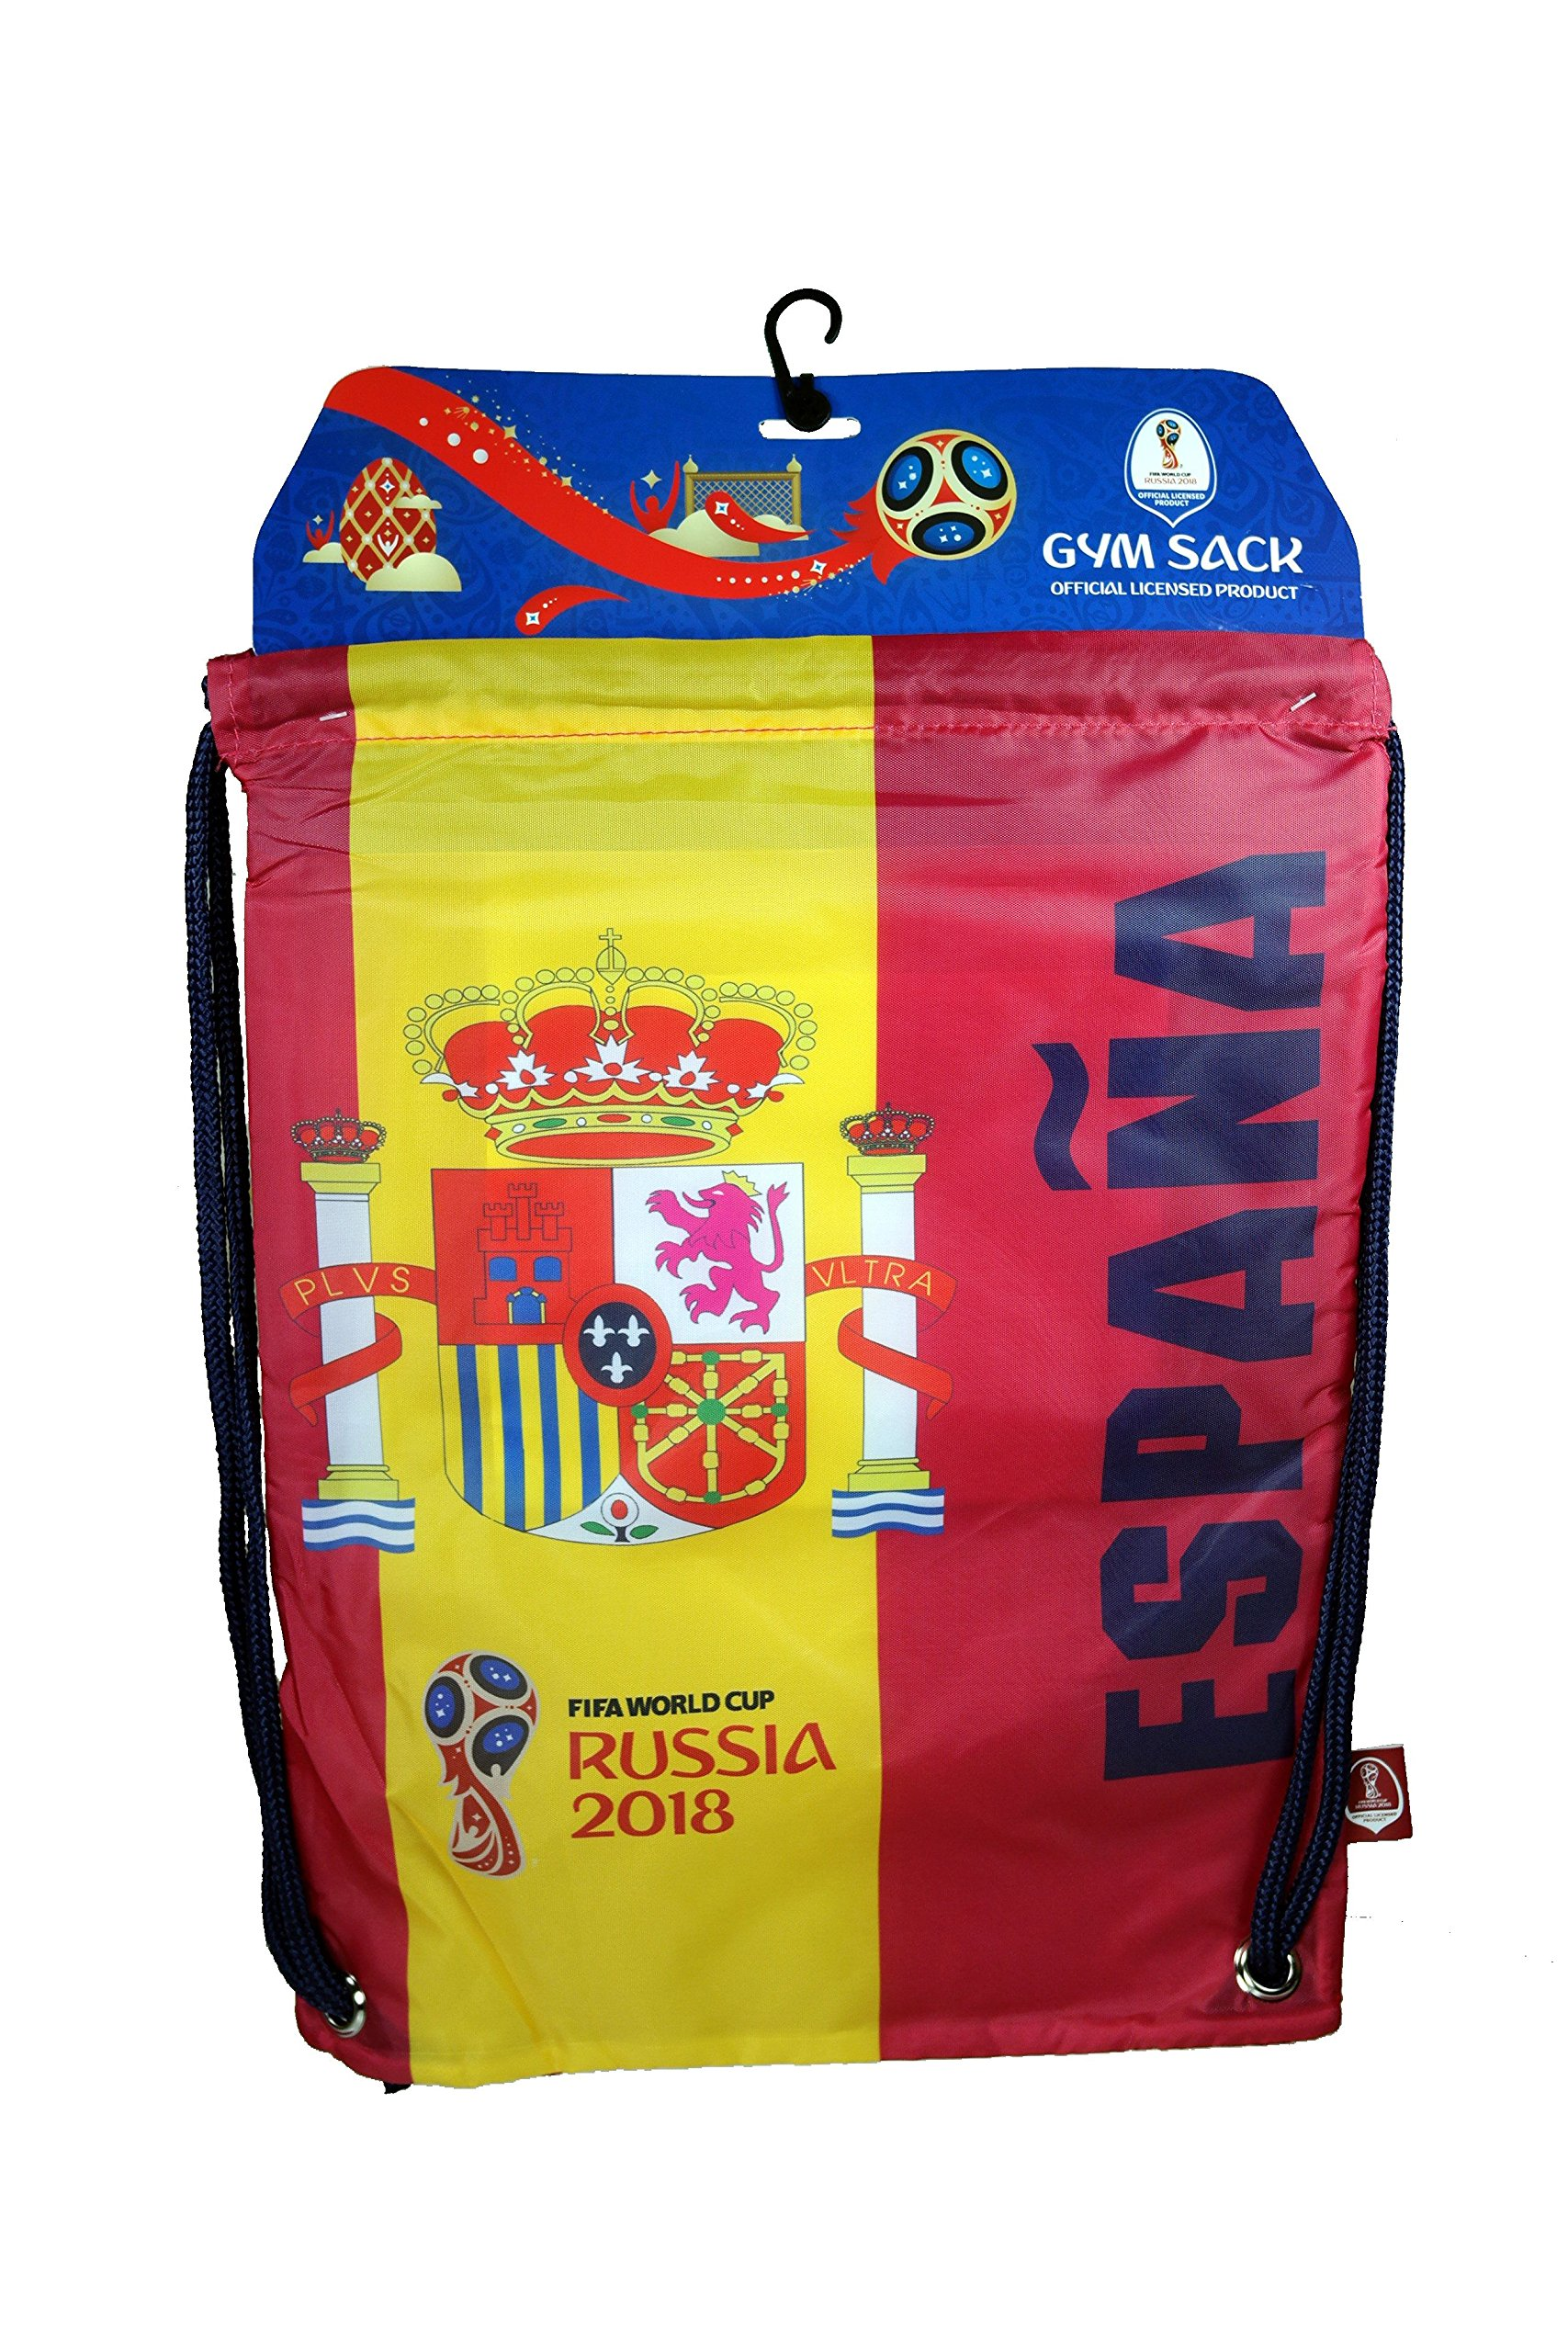 FIFA Official Russia 2018 World Cup Official Licensed Cinch Bag 04-1